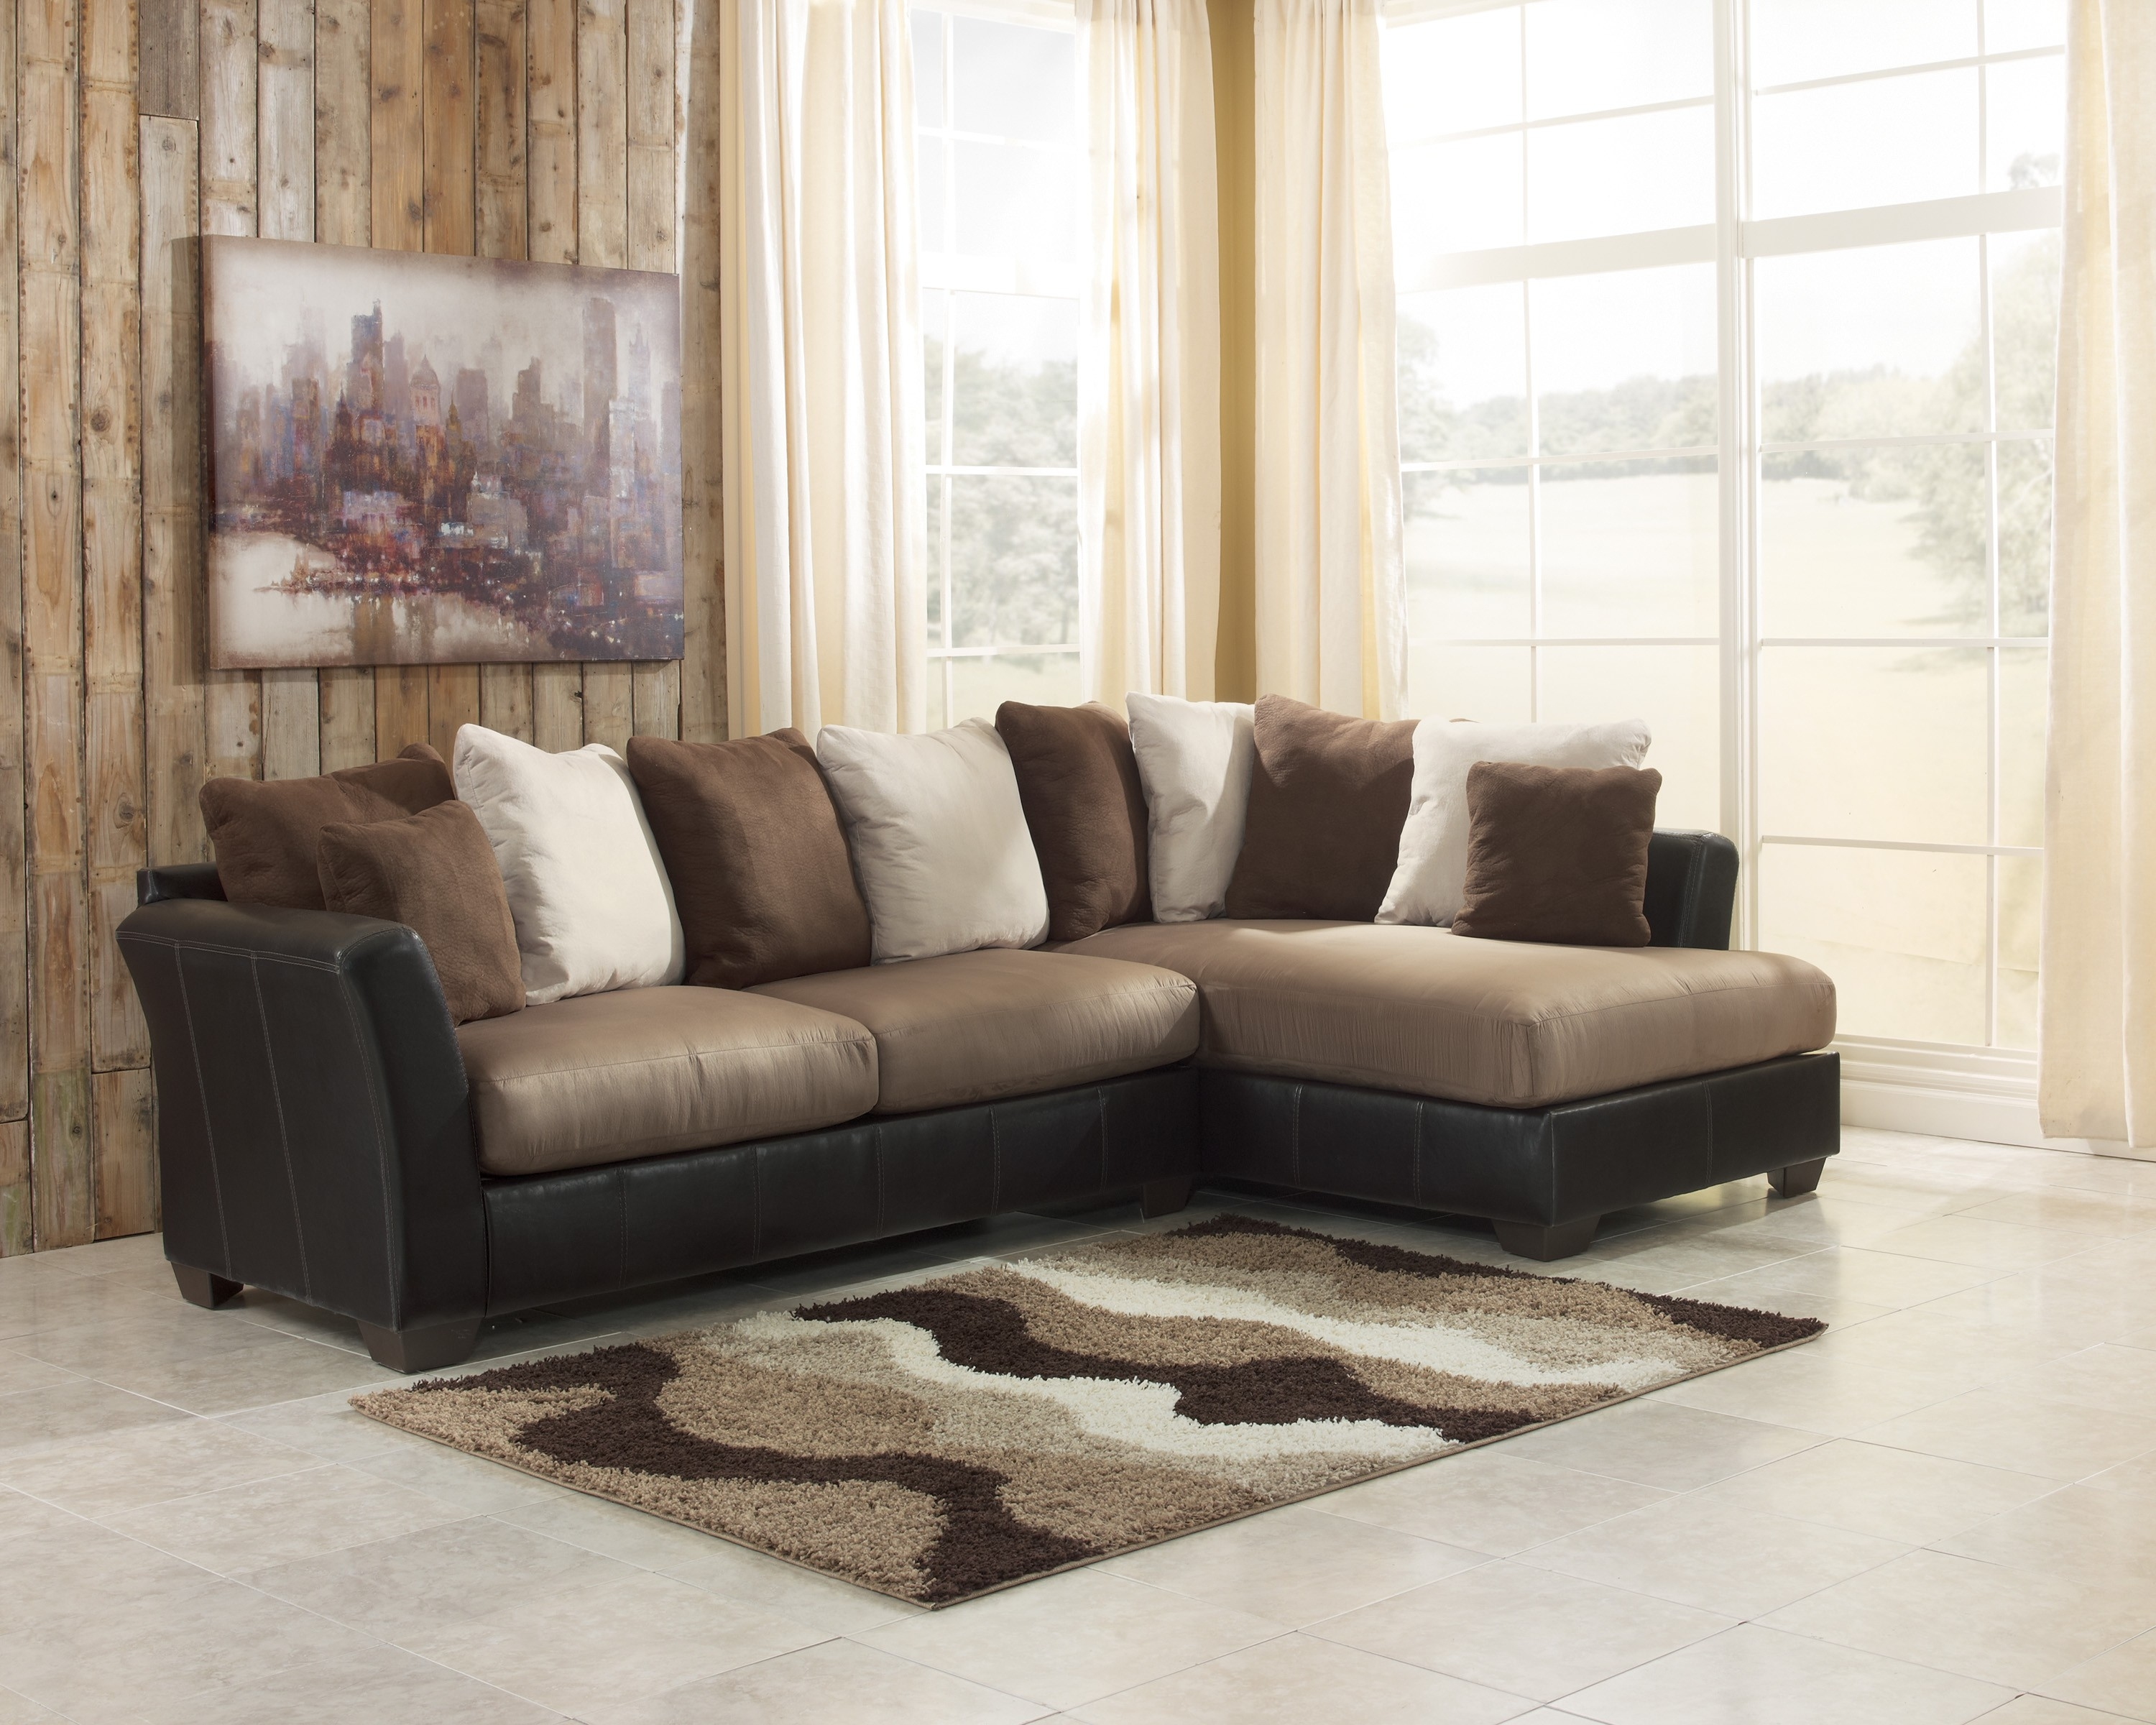 Decor Fascinating Benchcraft Sofa With Luxury Shapes For Living With Regard To Berkline Sectional Sofa (Image 9 of 15)